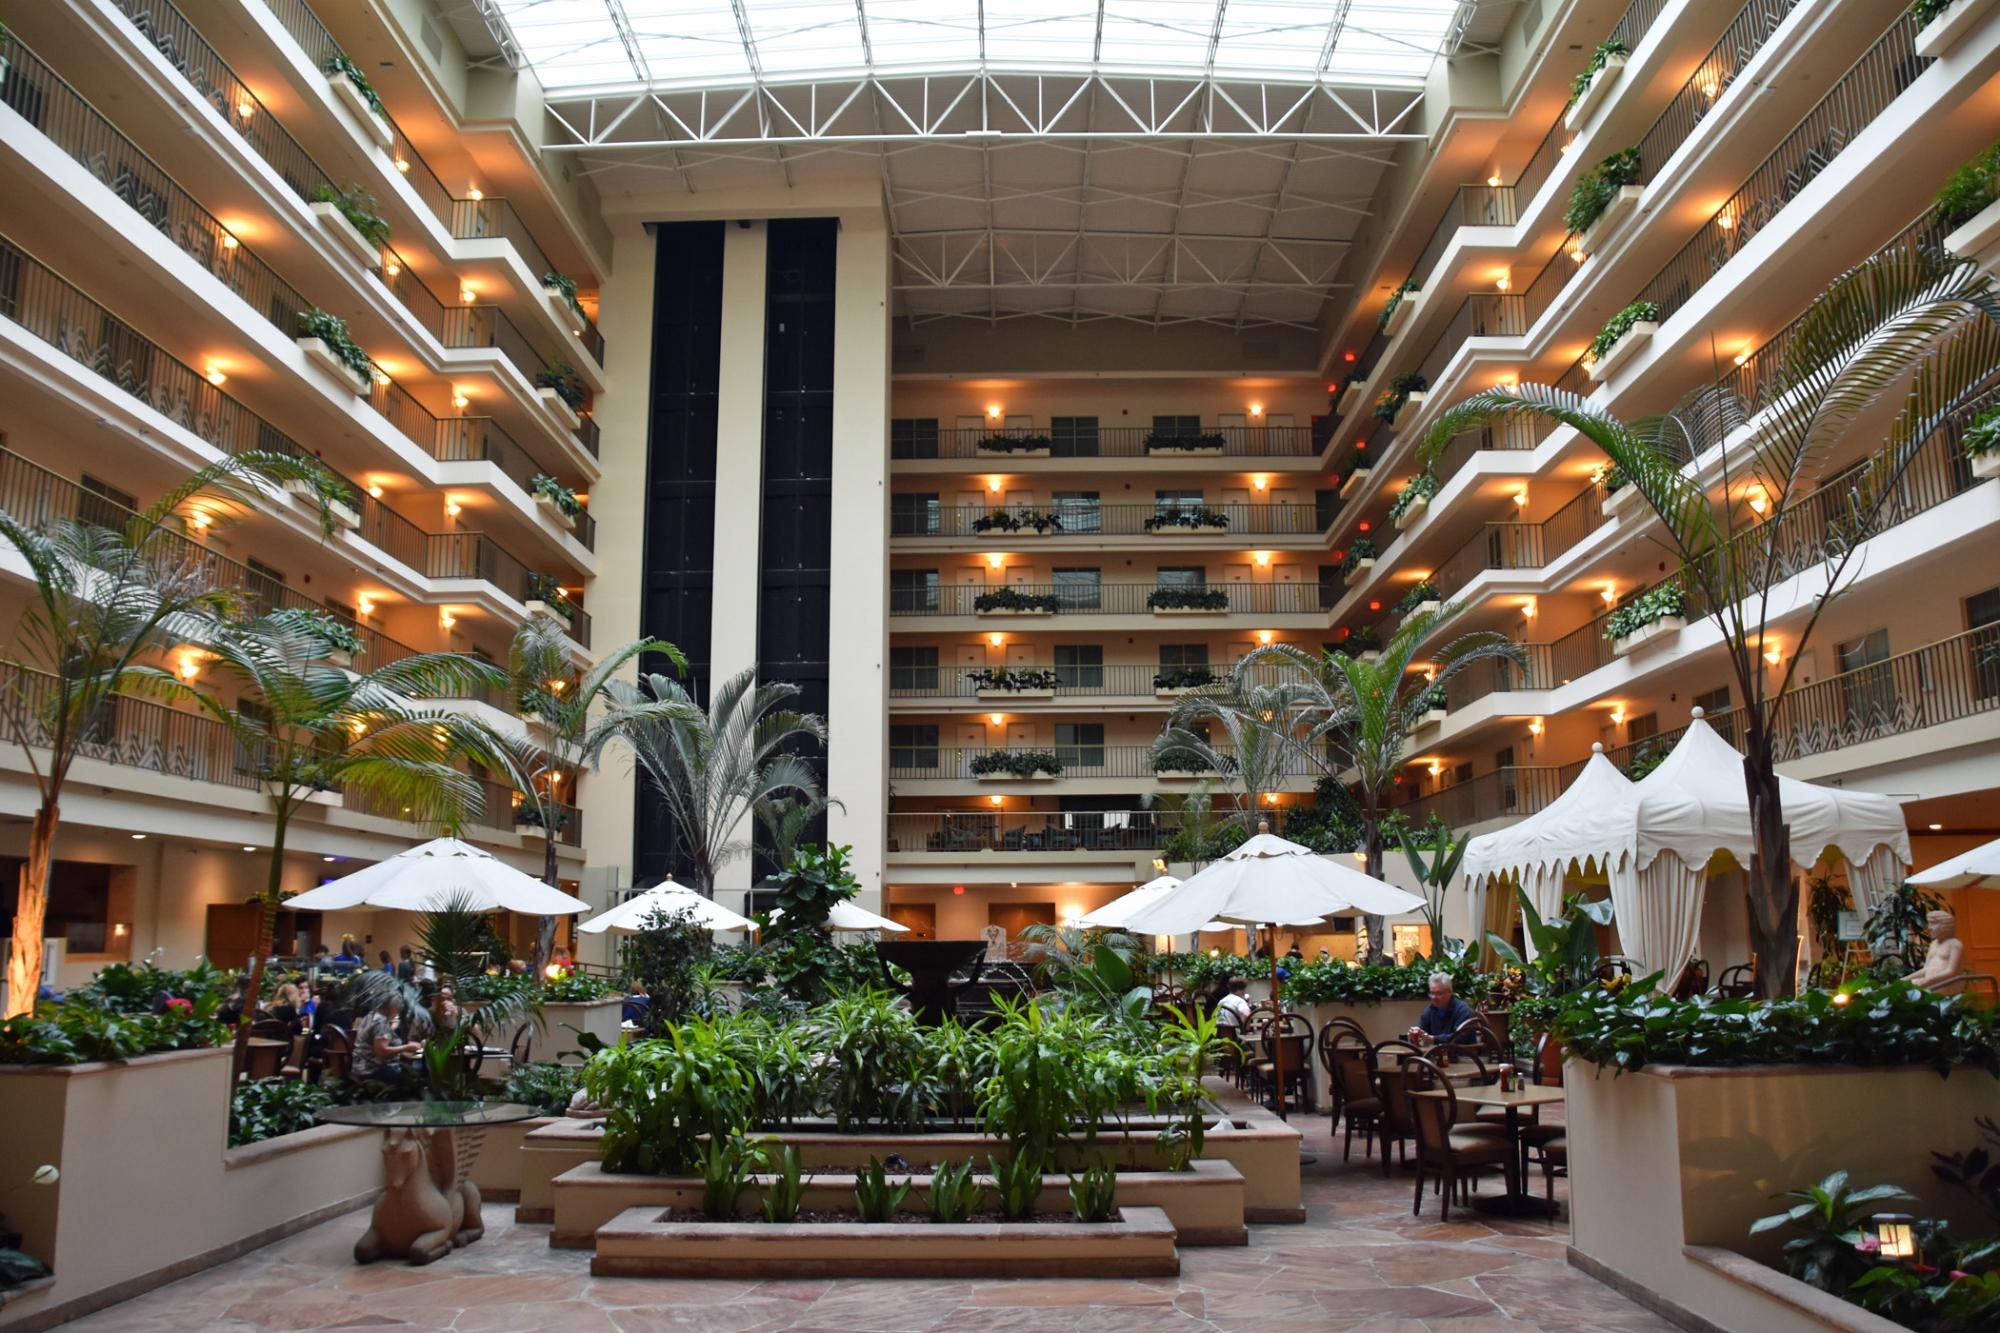 https://www.hotelsbyday.com/_data/default-hotel_image/2/10339/hotel-atrium.jpg